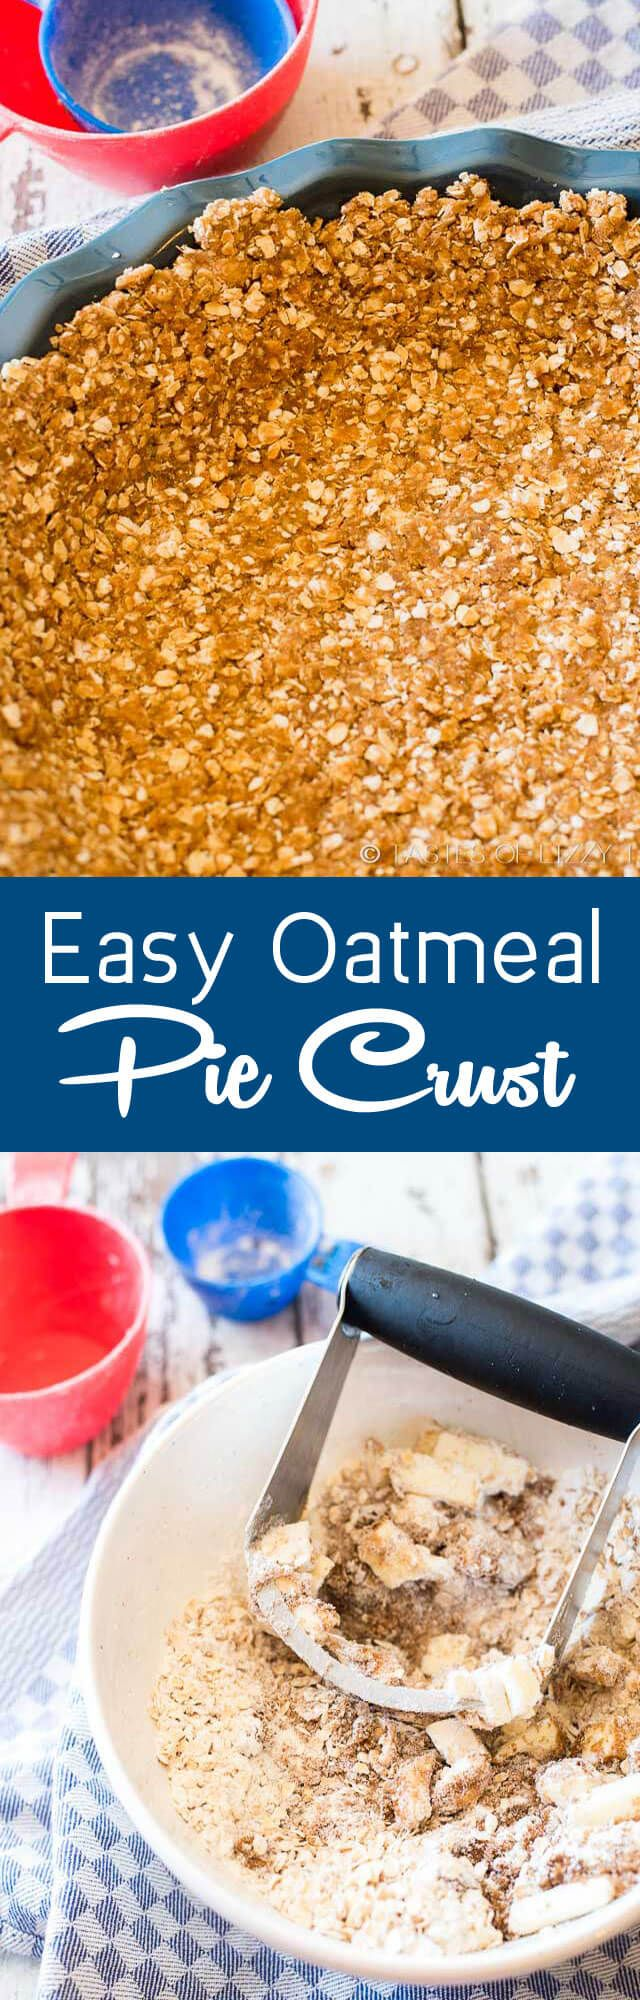 Tired of graham cracker crusts? This 5 ingredient, brown sugar, easy oatmeal pie crust makes the most delicious and unique base to creamy, no-bake pies. (Pumpkin Butter Coconut Flour)